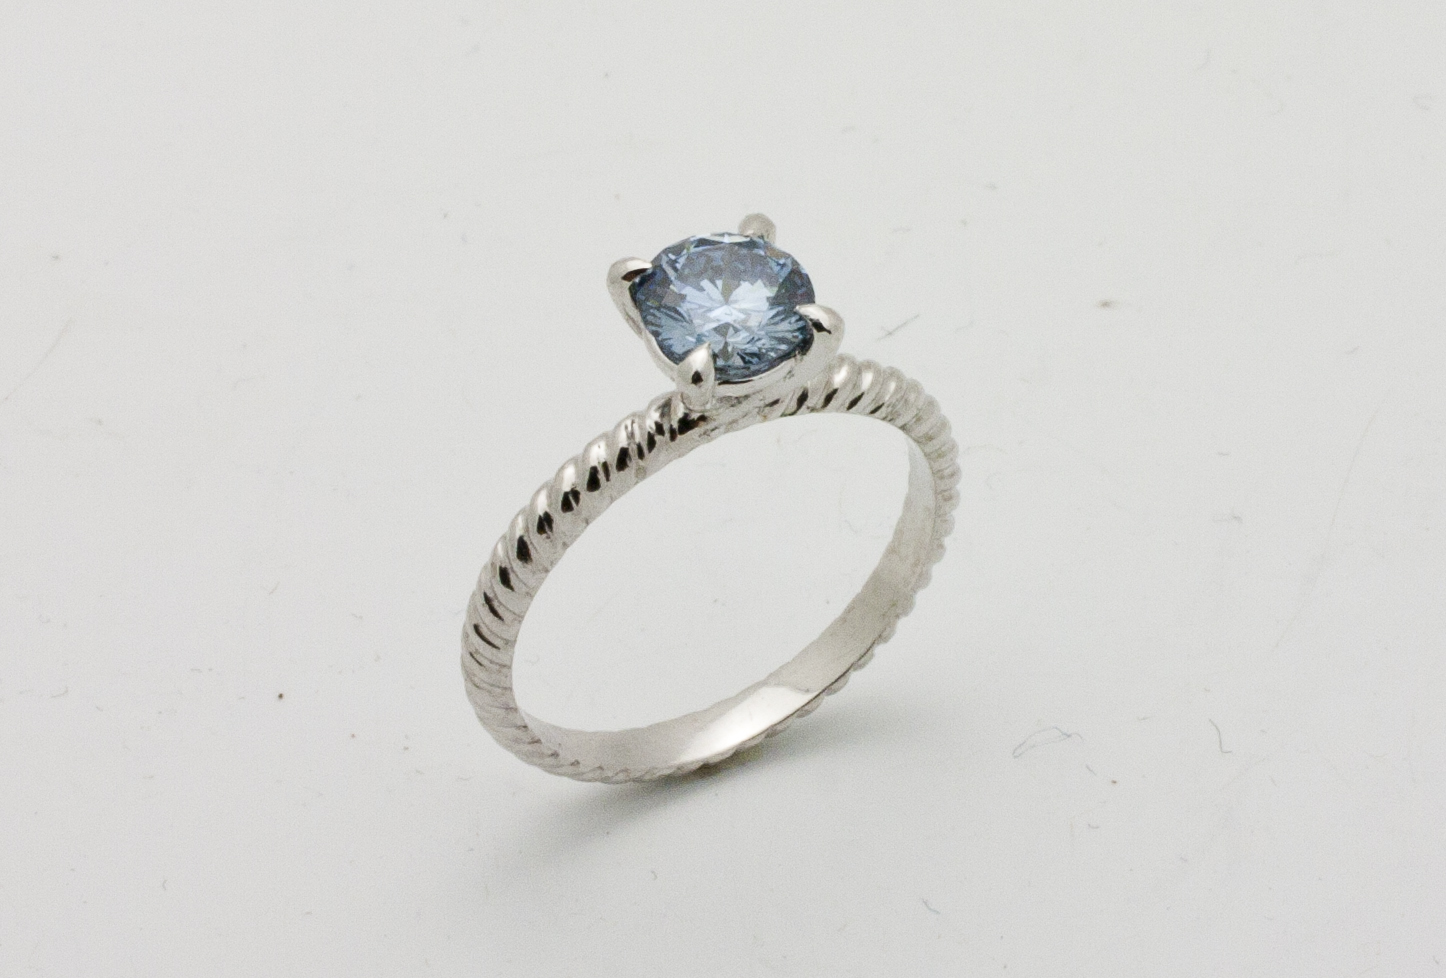 Created 0.83ct blue diamond stone with a twisted platinum band.  Starting at $$7500.00 in this size and quality  Can be customizable with any stone, size, metal etc.